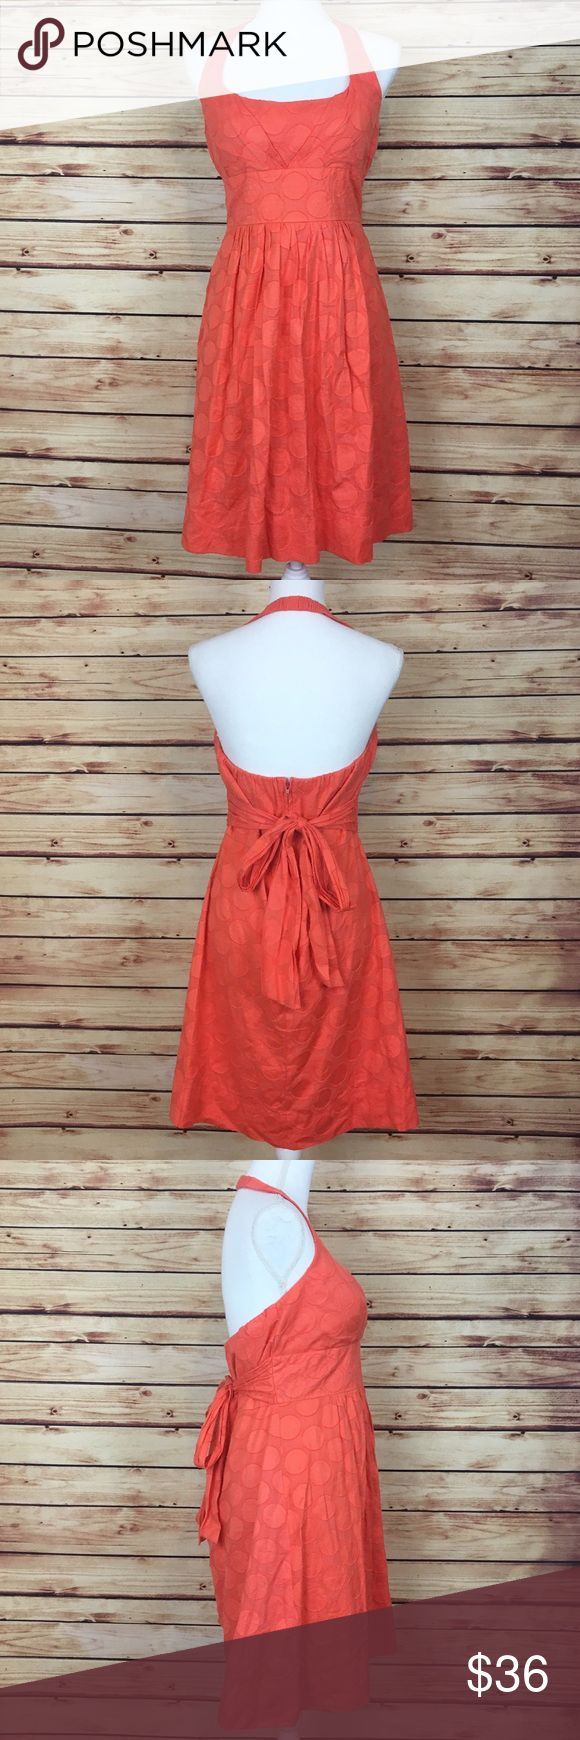 """B. Smart Orange Polka Dot Halter Dress Size 14 B. Smart Dress. Orange. Polka dot. Halter neck. Waist tie. Back zip. Size 14.  Excellent preowned condition with no flaws.  Measurements are approximately: 34"""" bust, 33"""" waist, 45"""" hips, and 21.5"""" waist to hem length.  100% cotton.  No trades. All items come from a pet friendly, smoke free home. Bundle to save! B. Smart Dresses"""